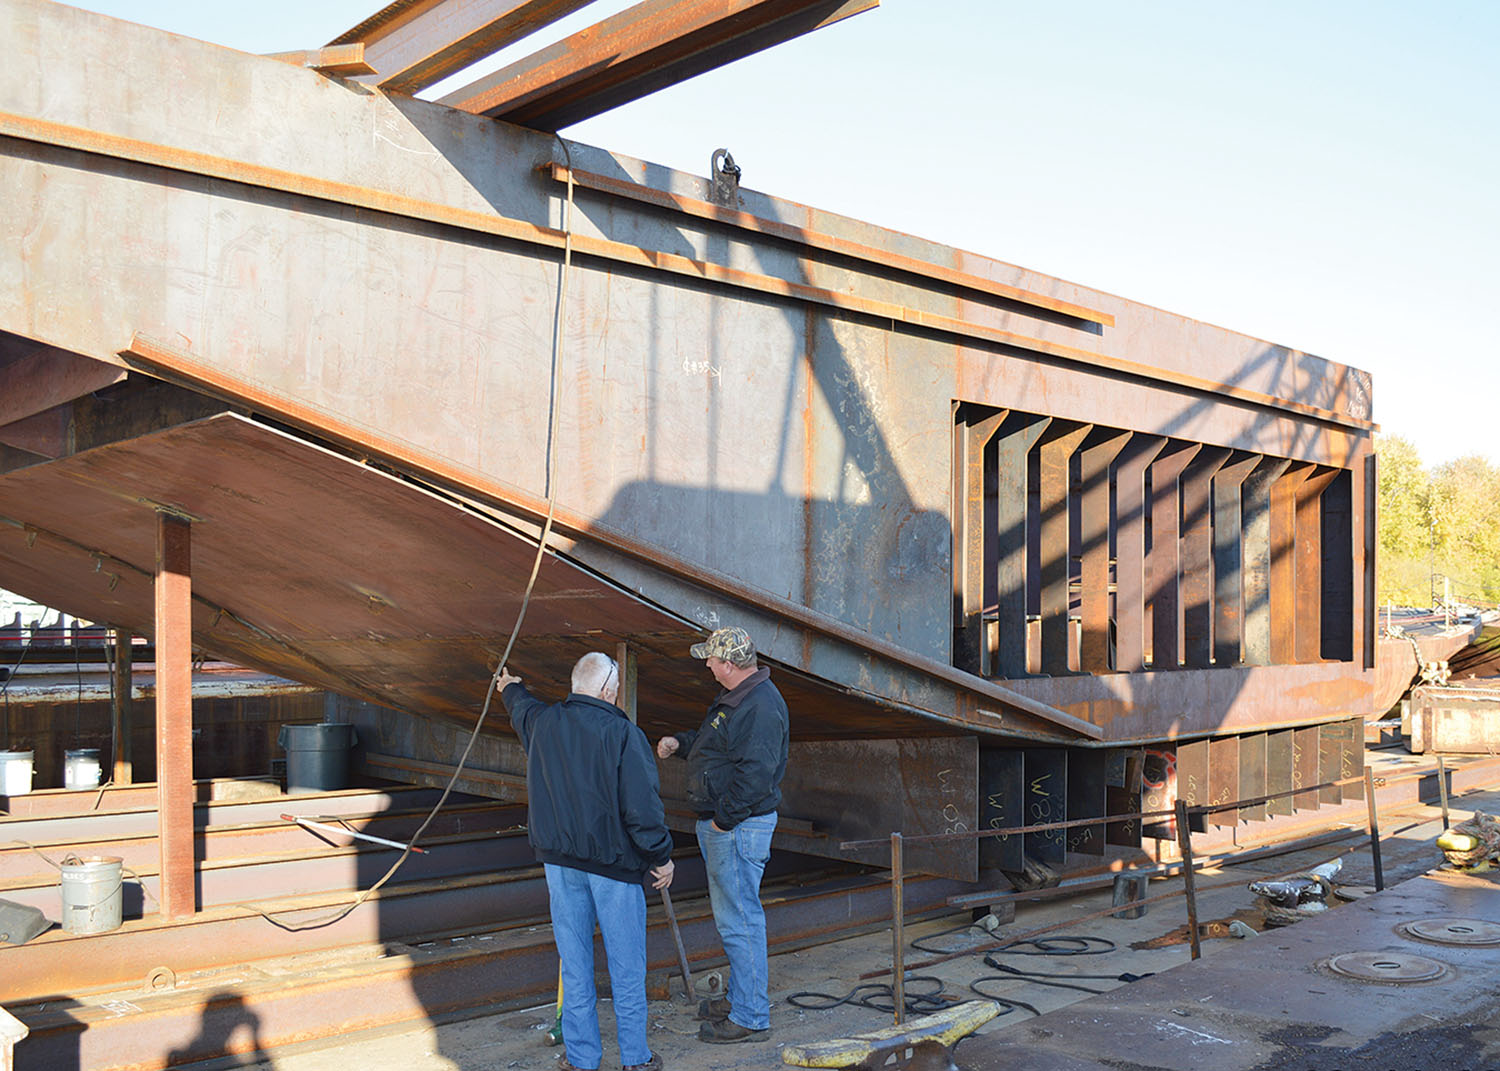 New towboat under construction at Mike's. (Photo courtesy of Mike's Inc.)